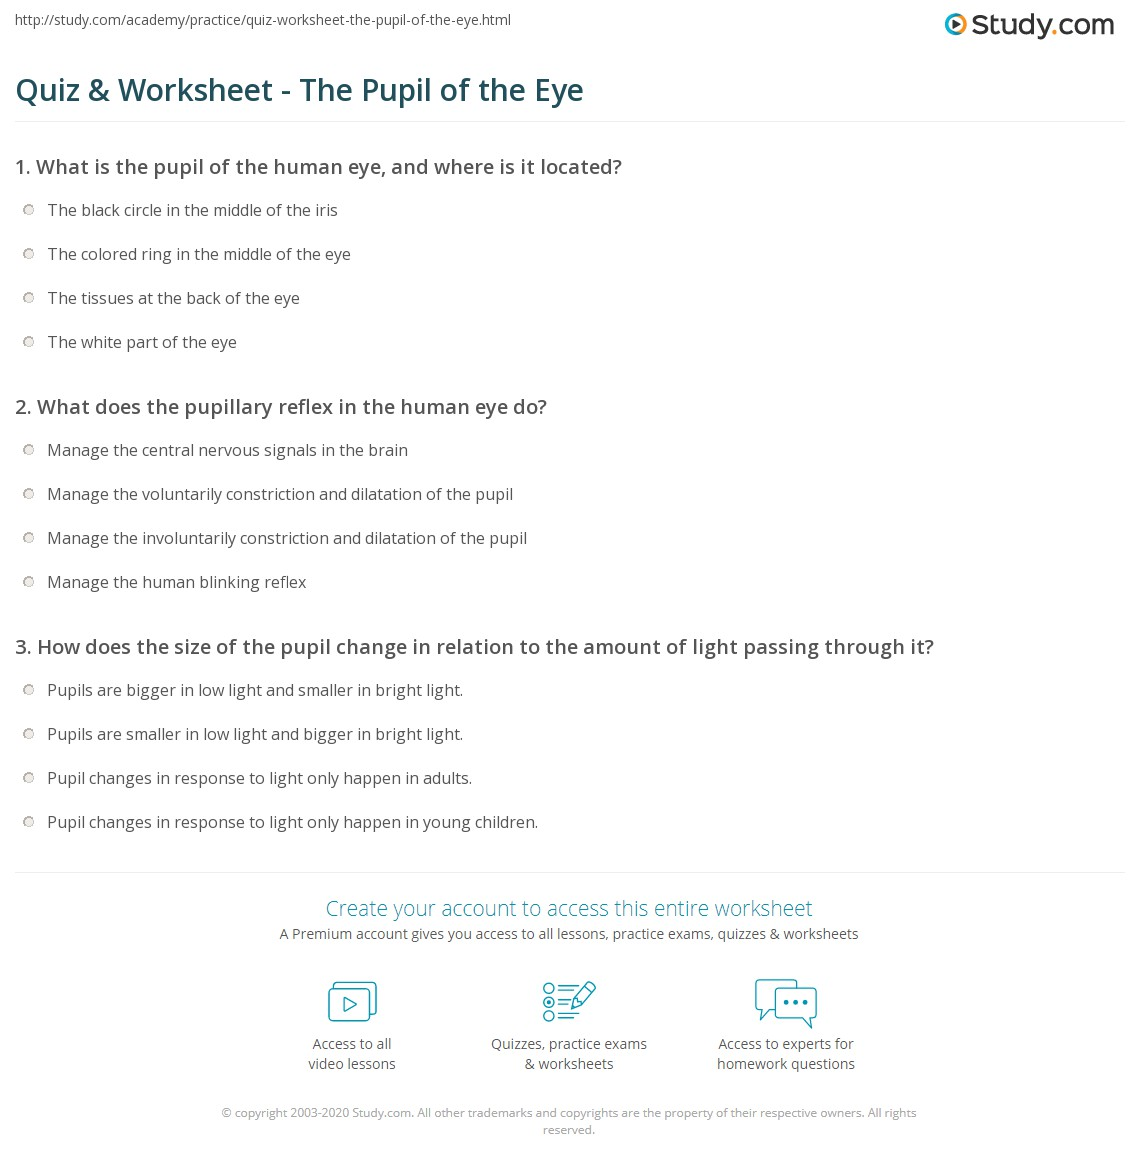 Quiz & Worksheet - The Pupil of the Eye | Study.com